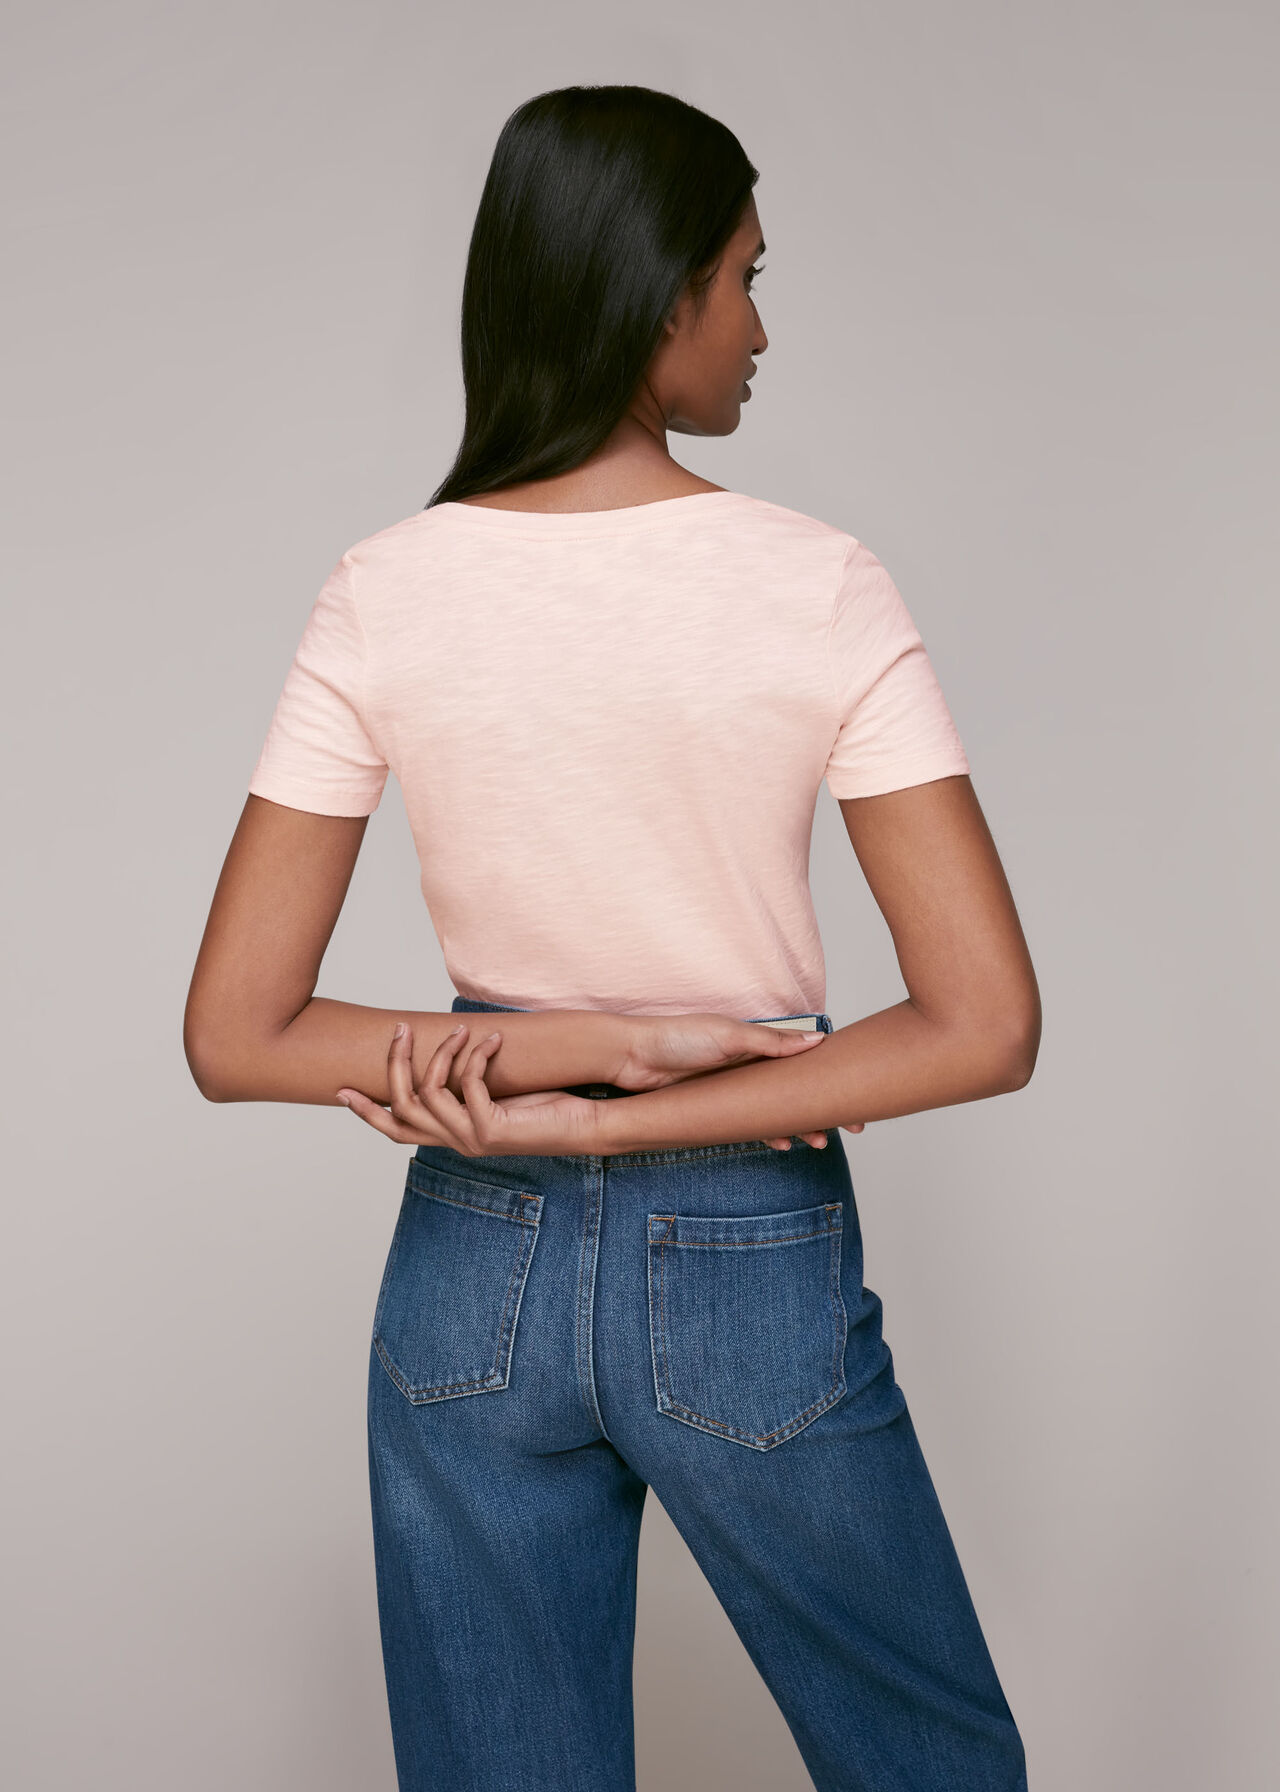 Sophie V Neck Cotton Tshirt Pale Pink